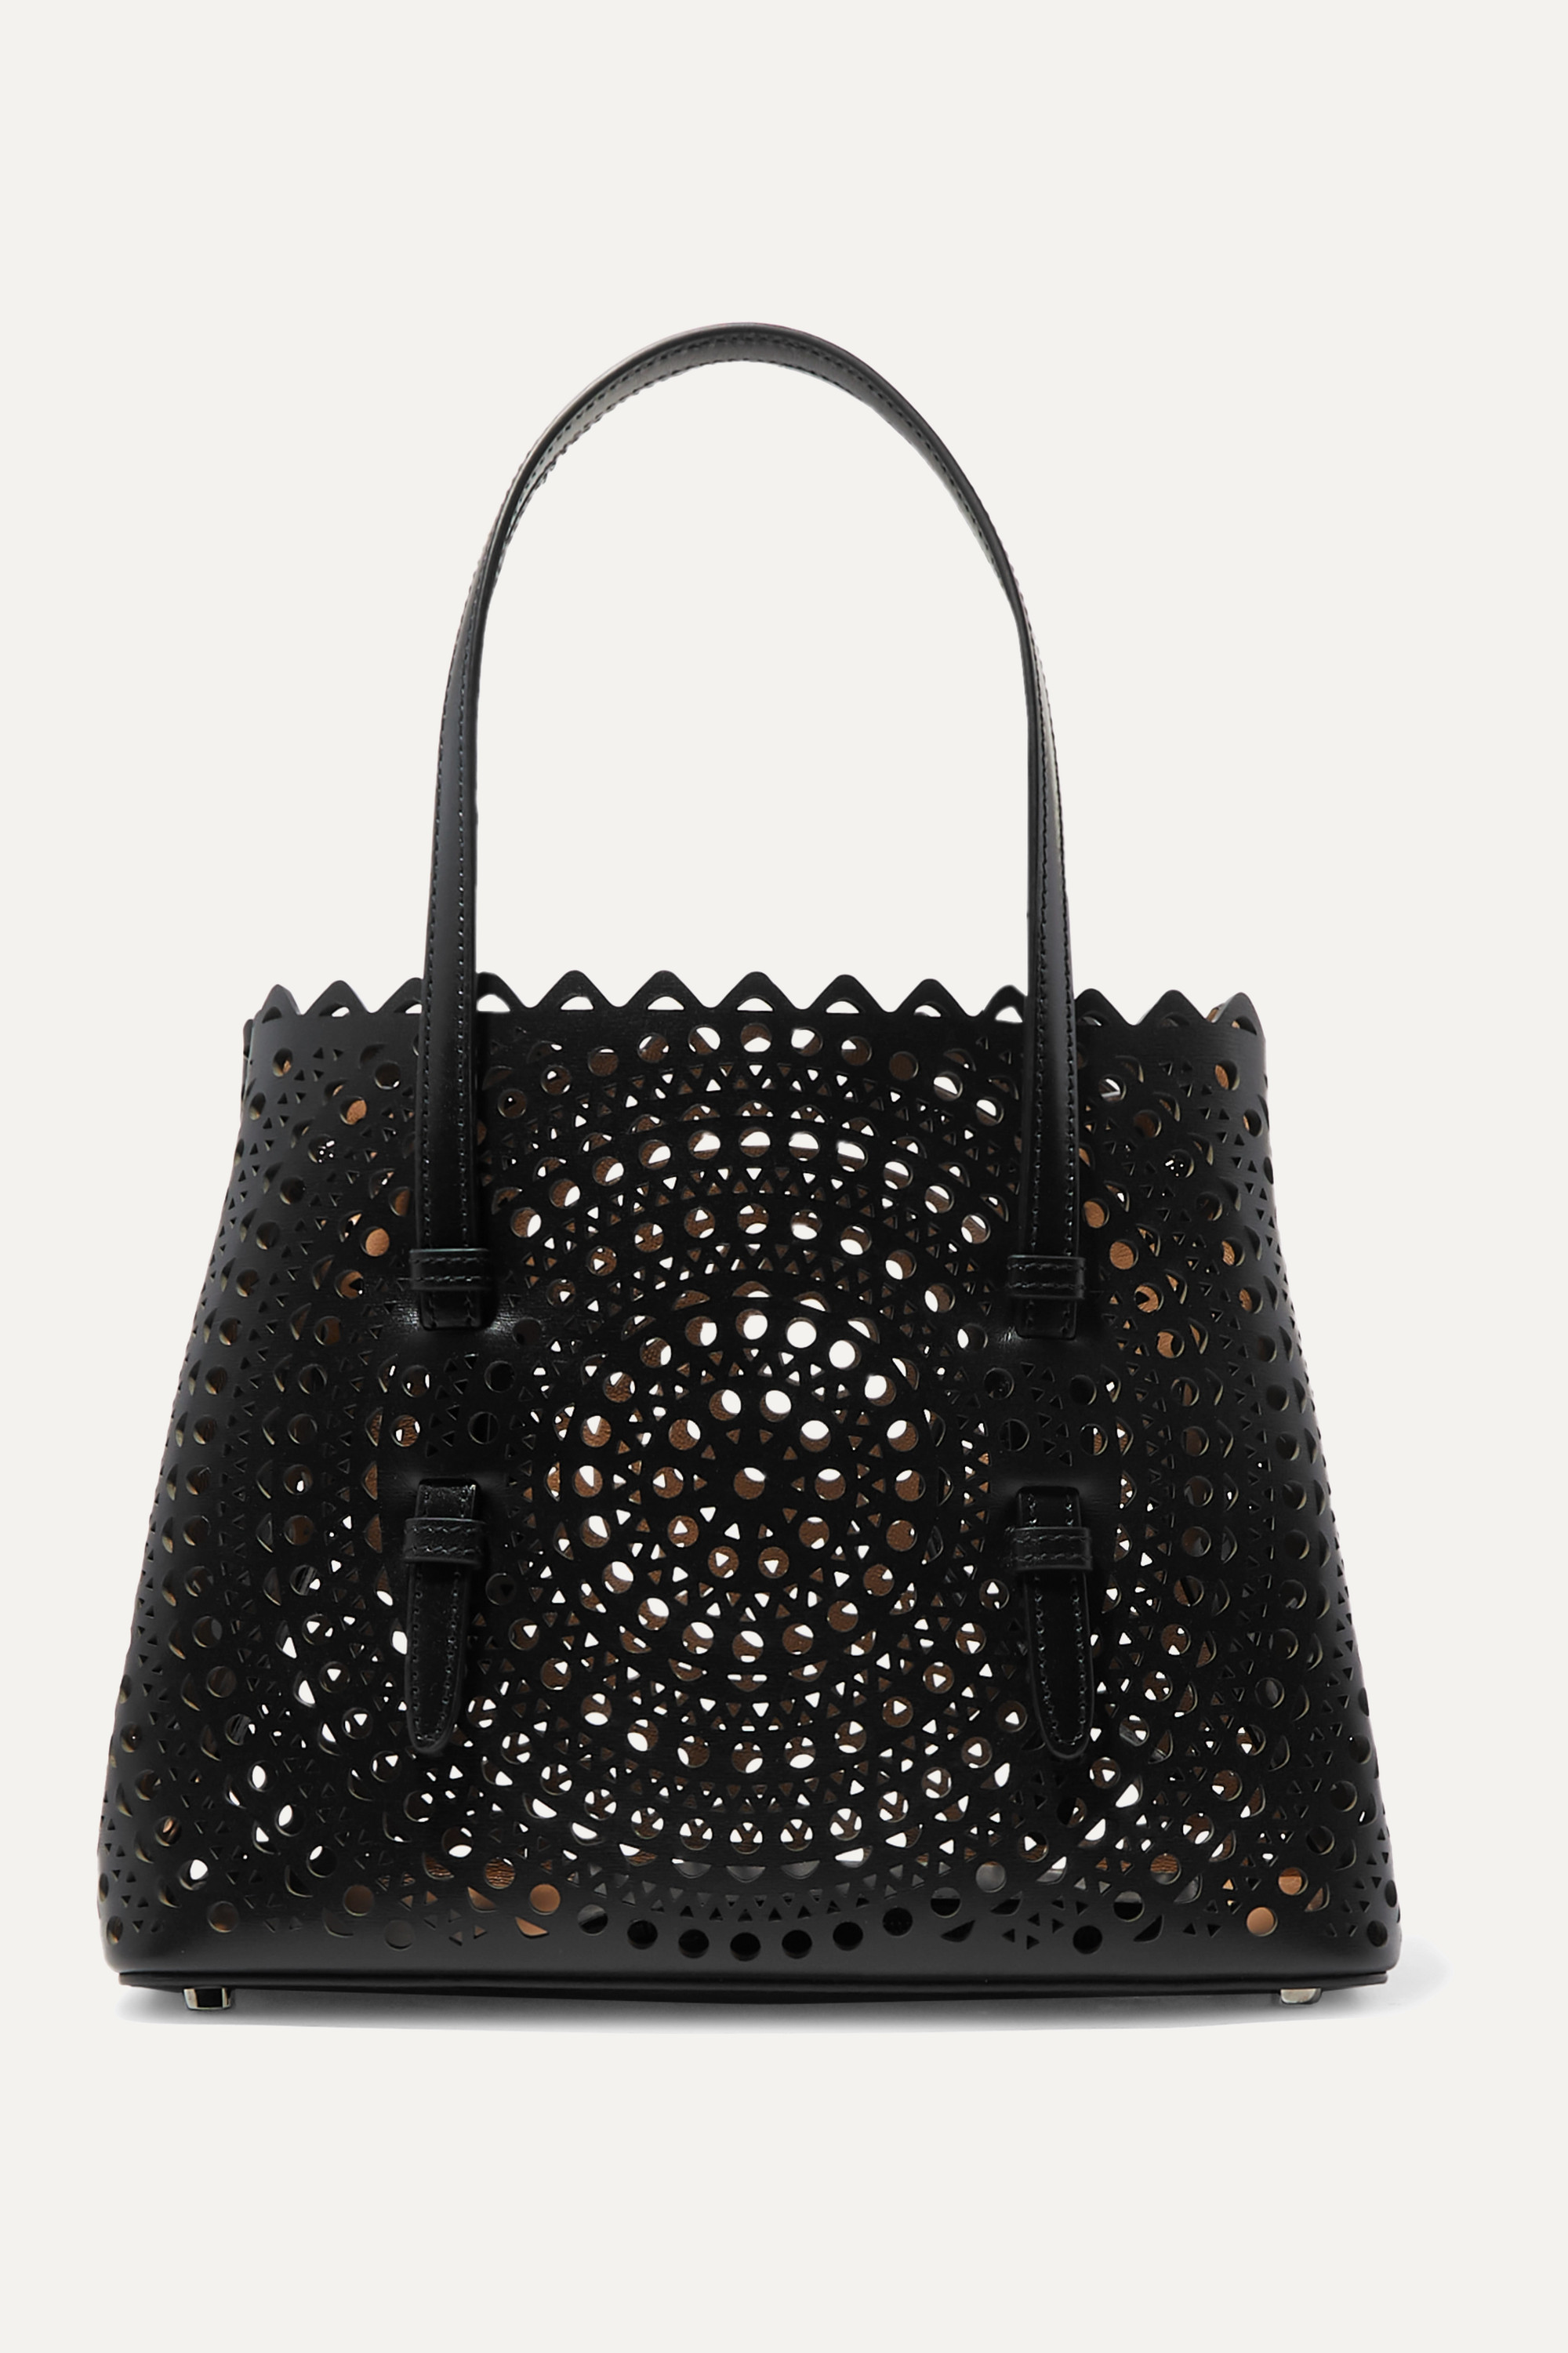 Mina small laser-cut leather tote by ALAÏA, available on net-a-porter.com for $2200 Kate Moss Bags Exact Product